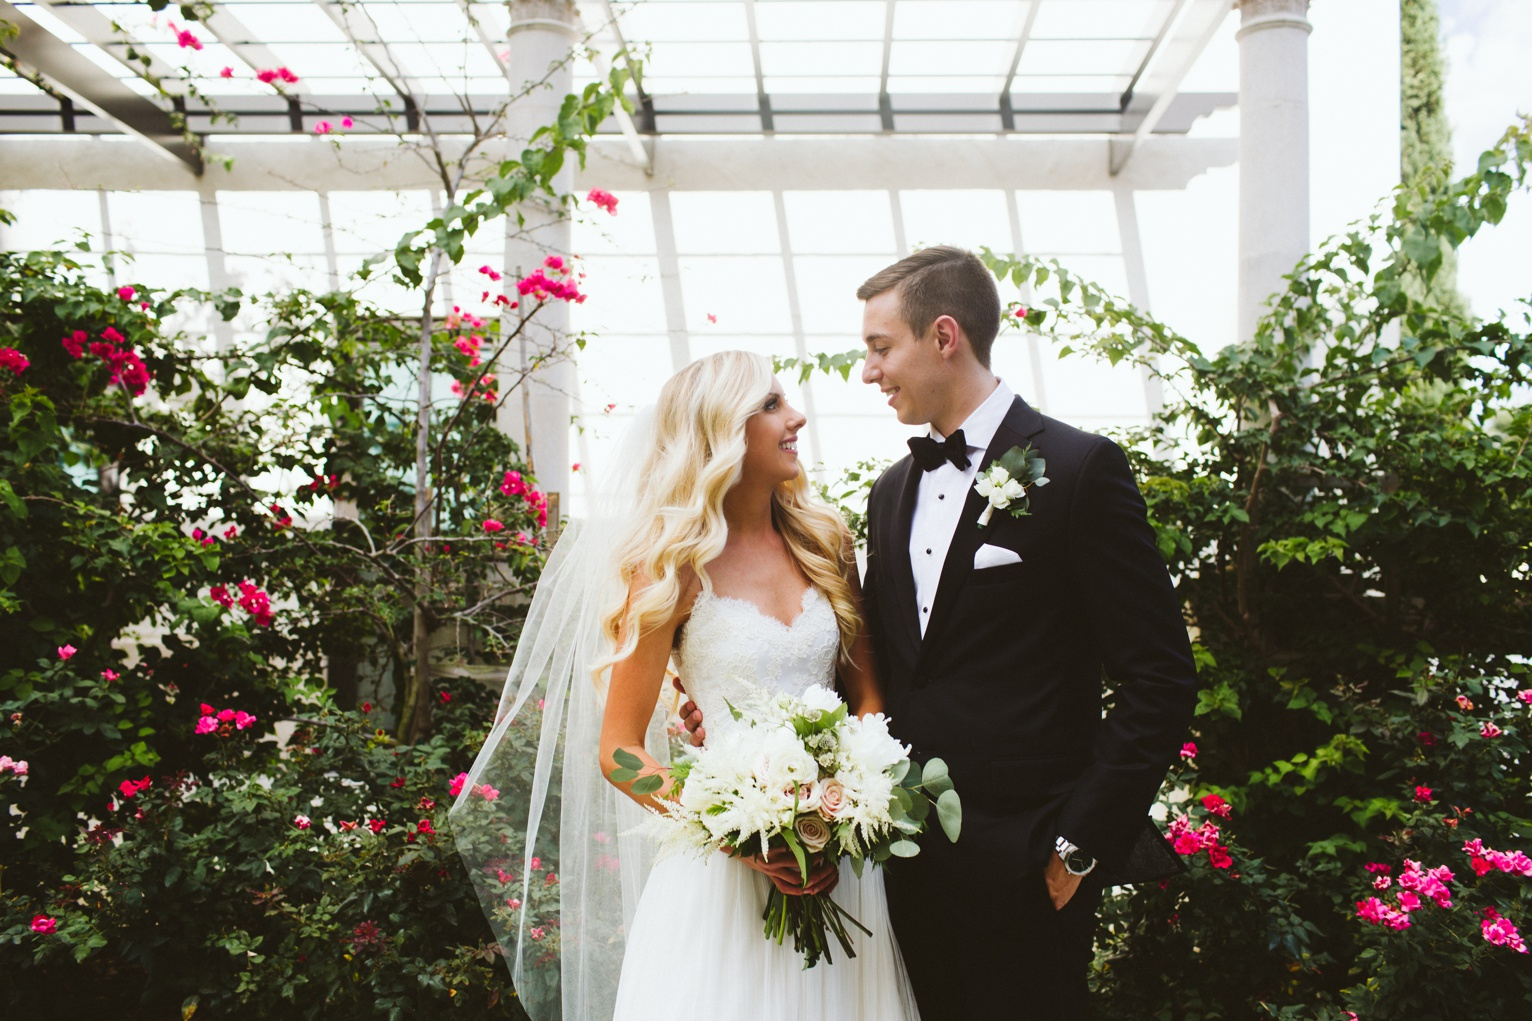 Dreamtownco.com_blog_Jordan&Lindsey_Wedding__0088.jpg